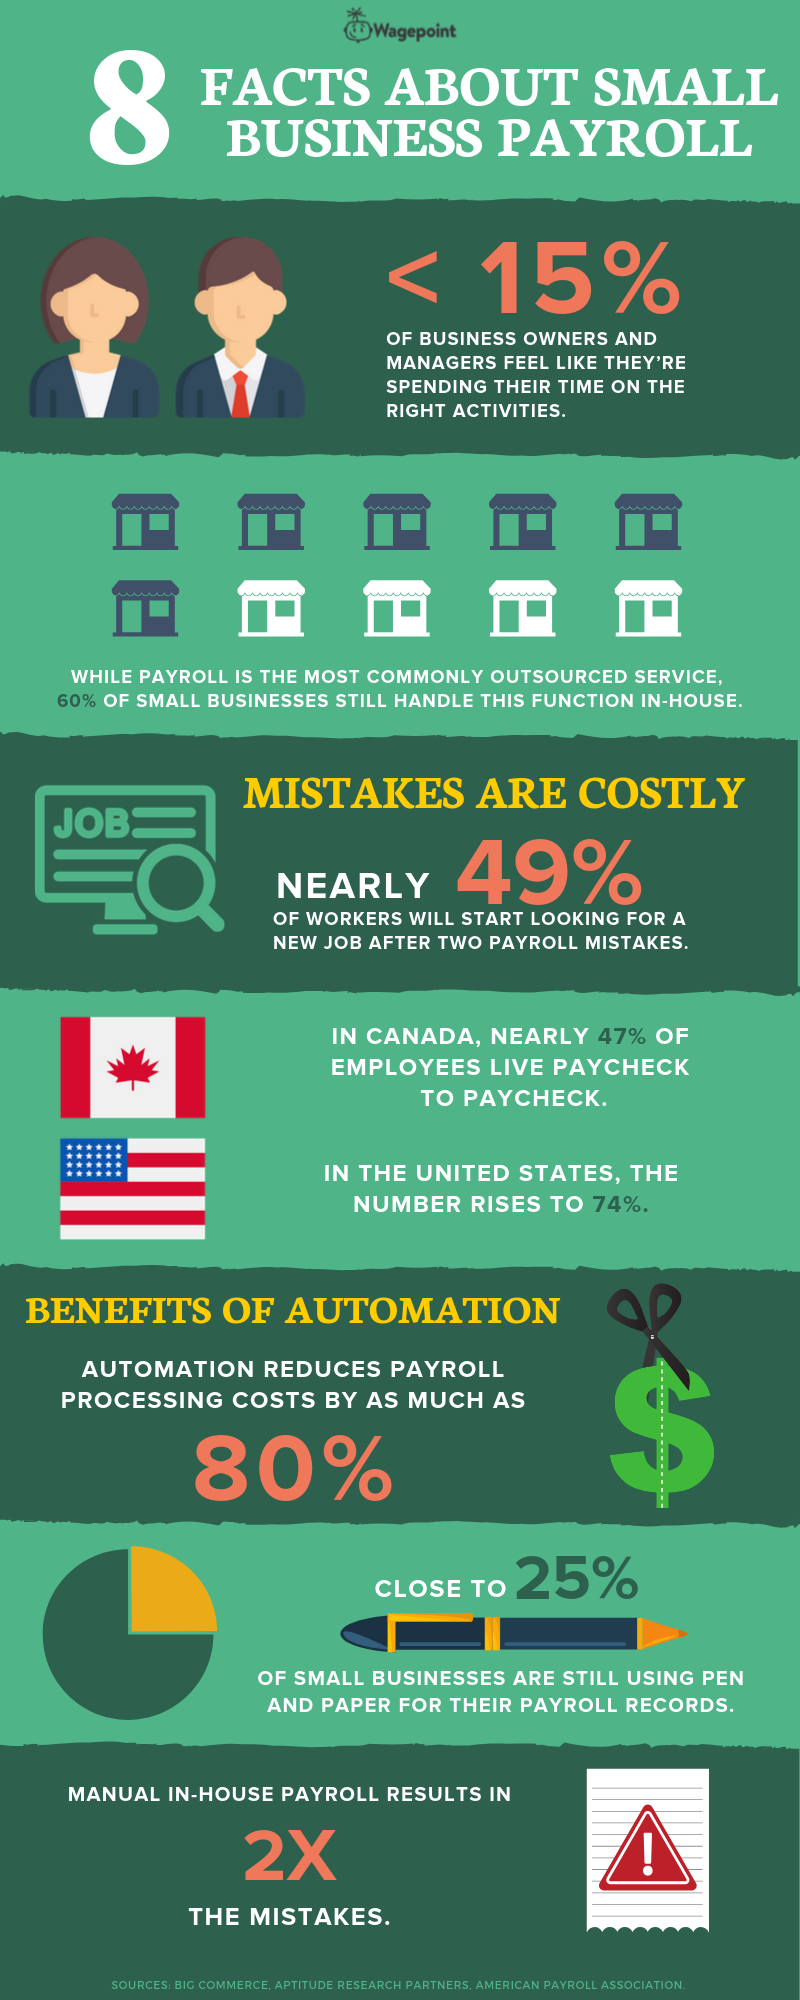 Wagepoint Small Business Payroll Facts About Small Business Payroll Infographic